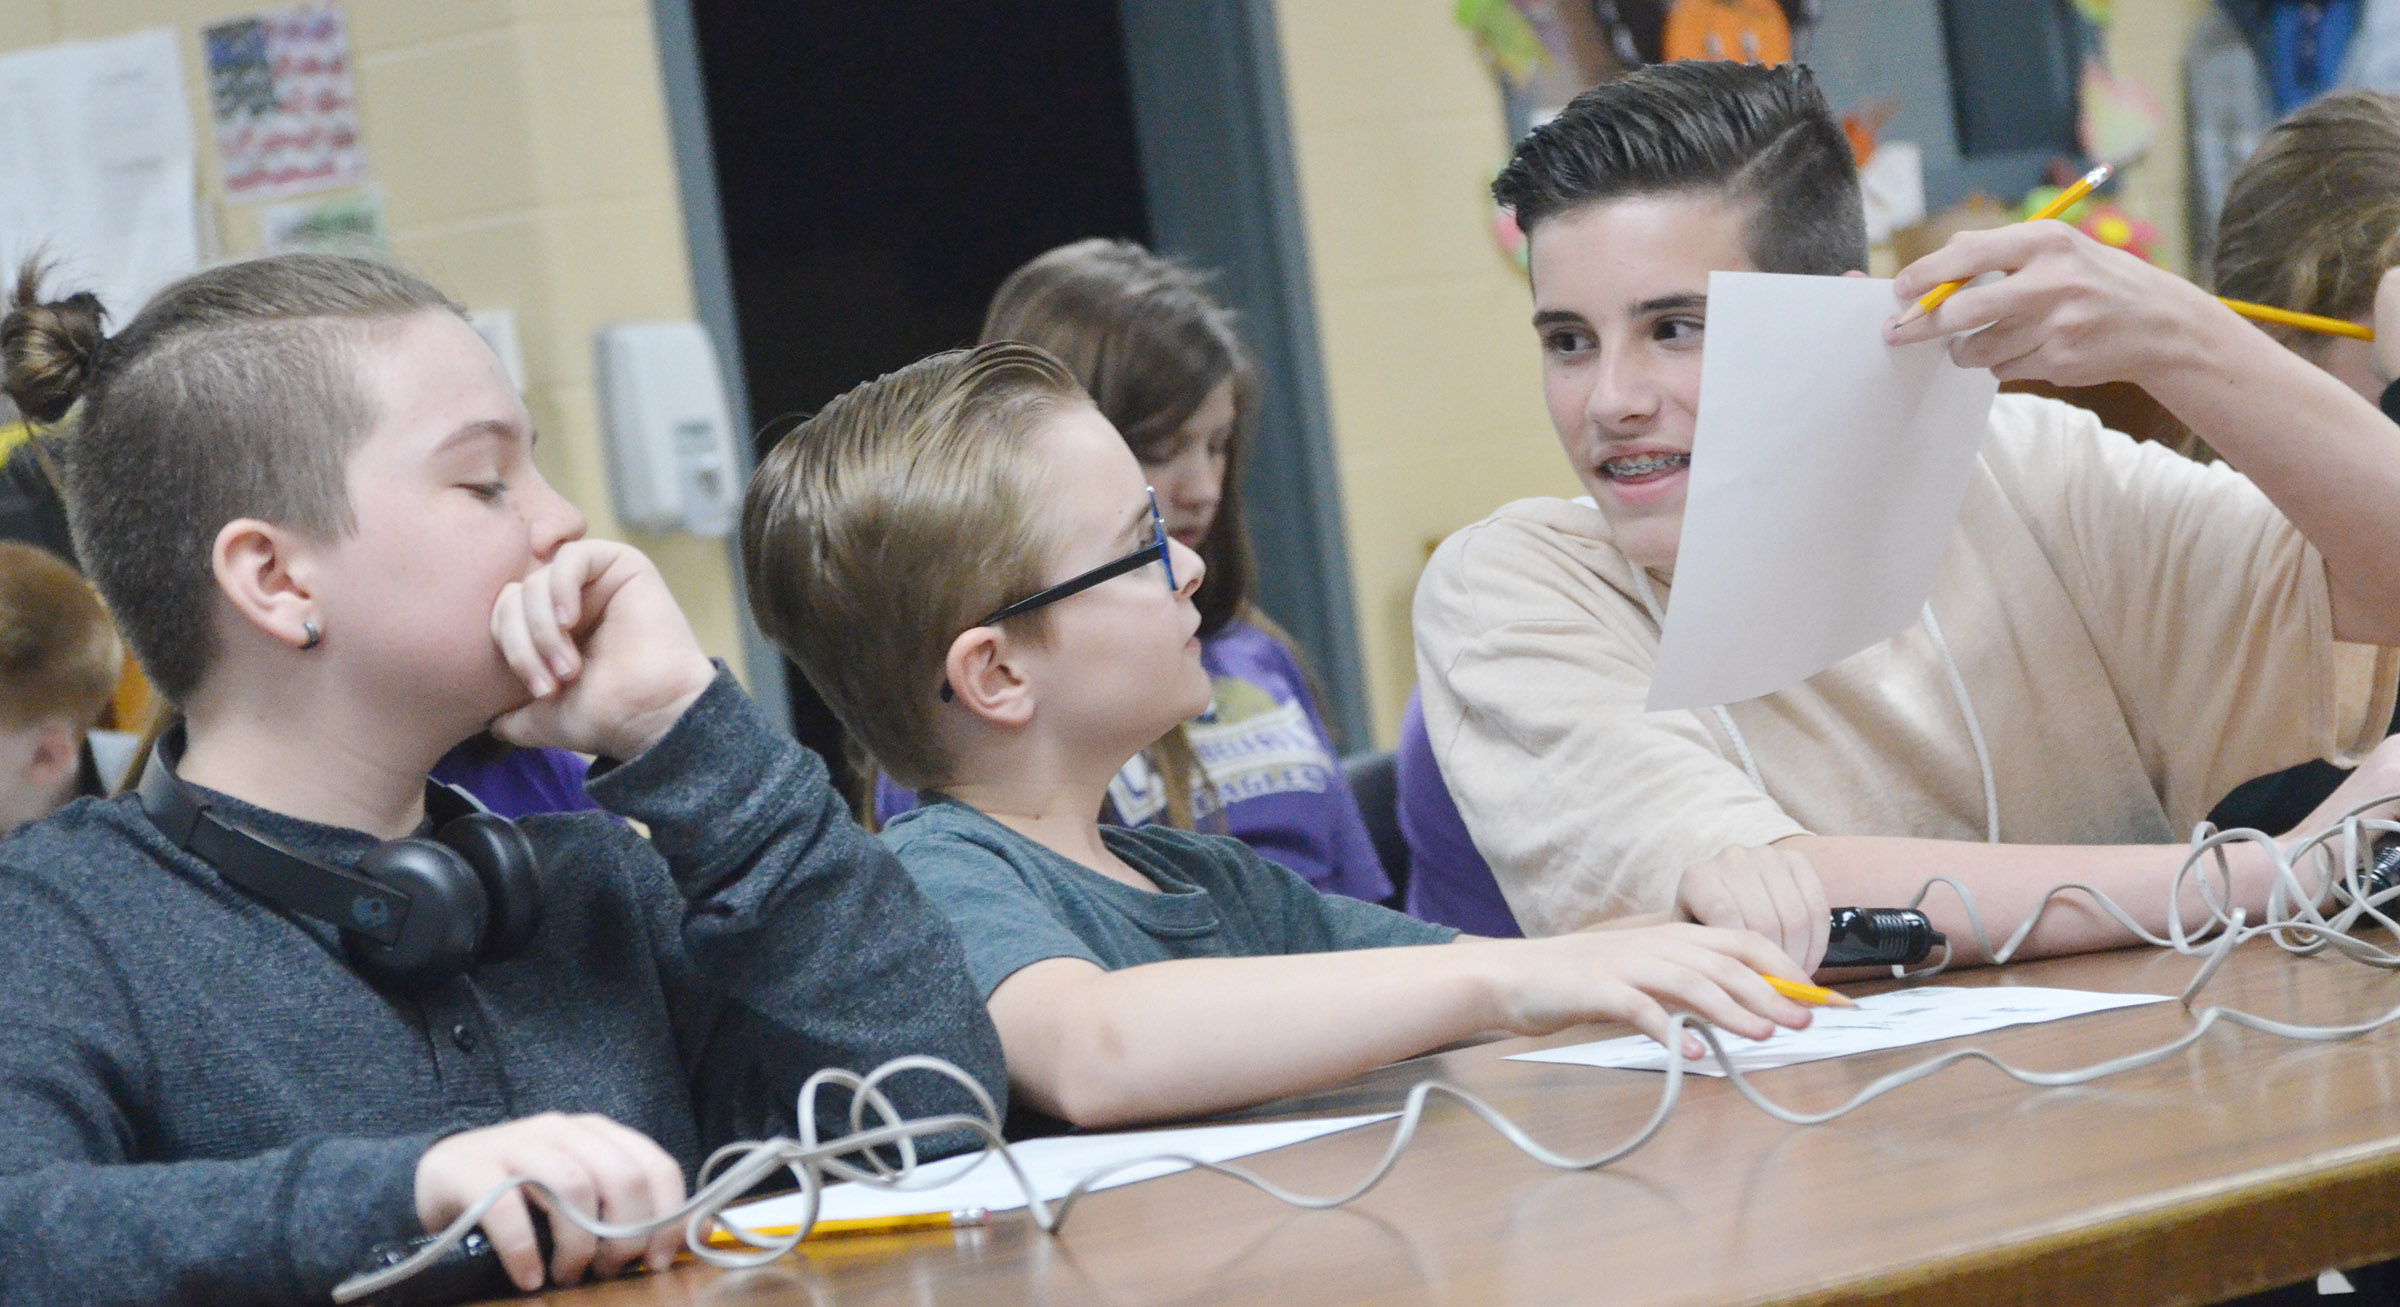 From left, sixth-graders Kayden Birdwell, Caleb Holt and Isaac Garrison discuss a question.